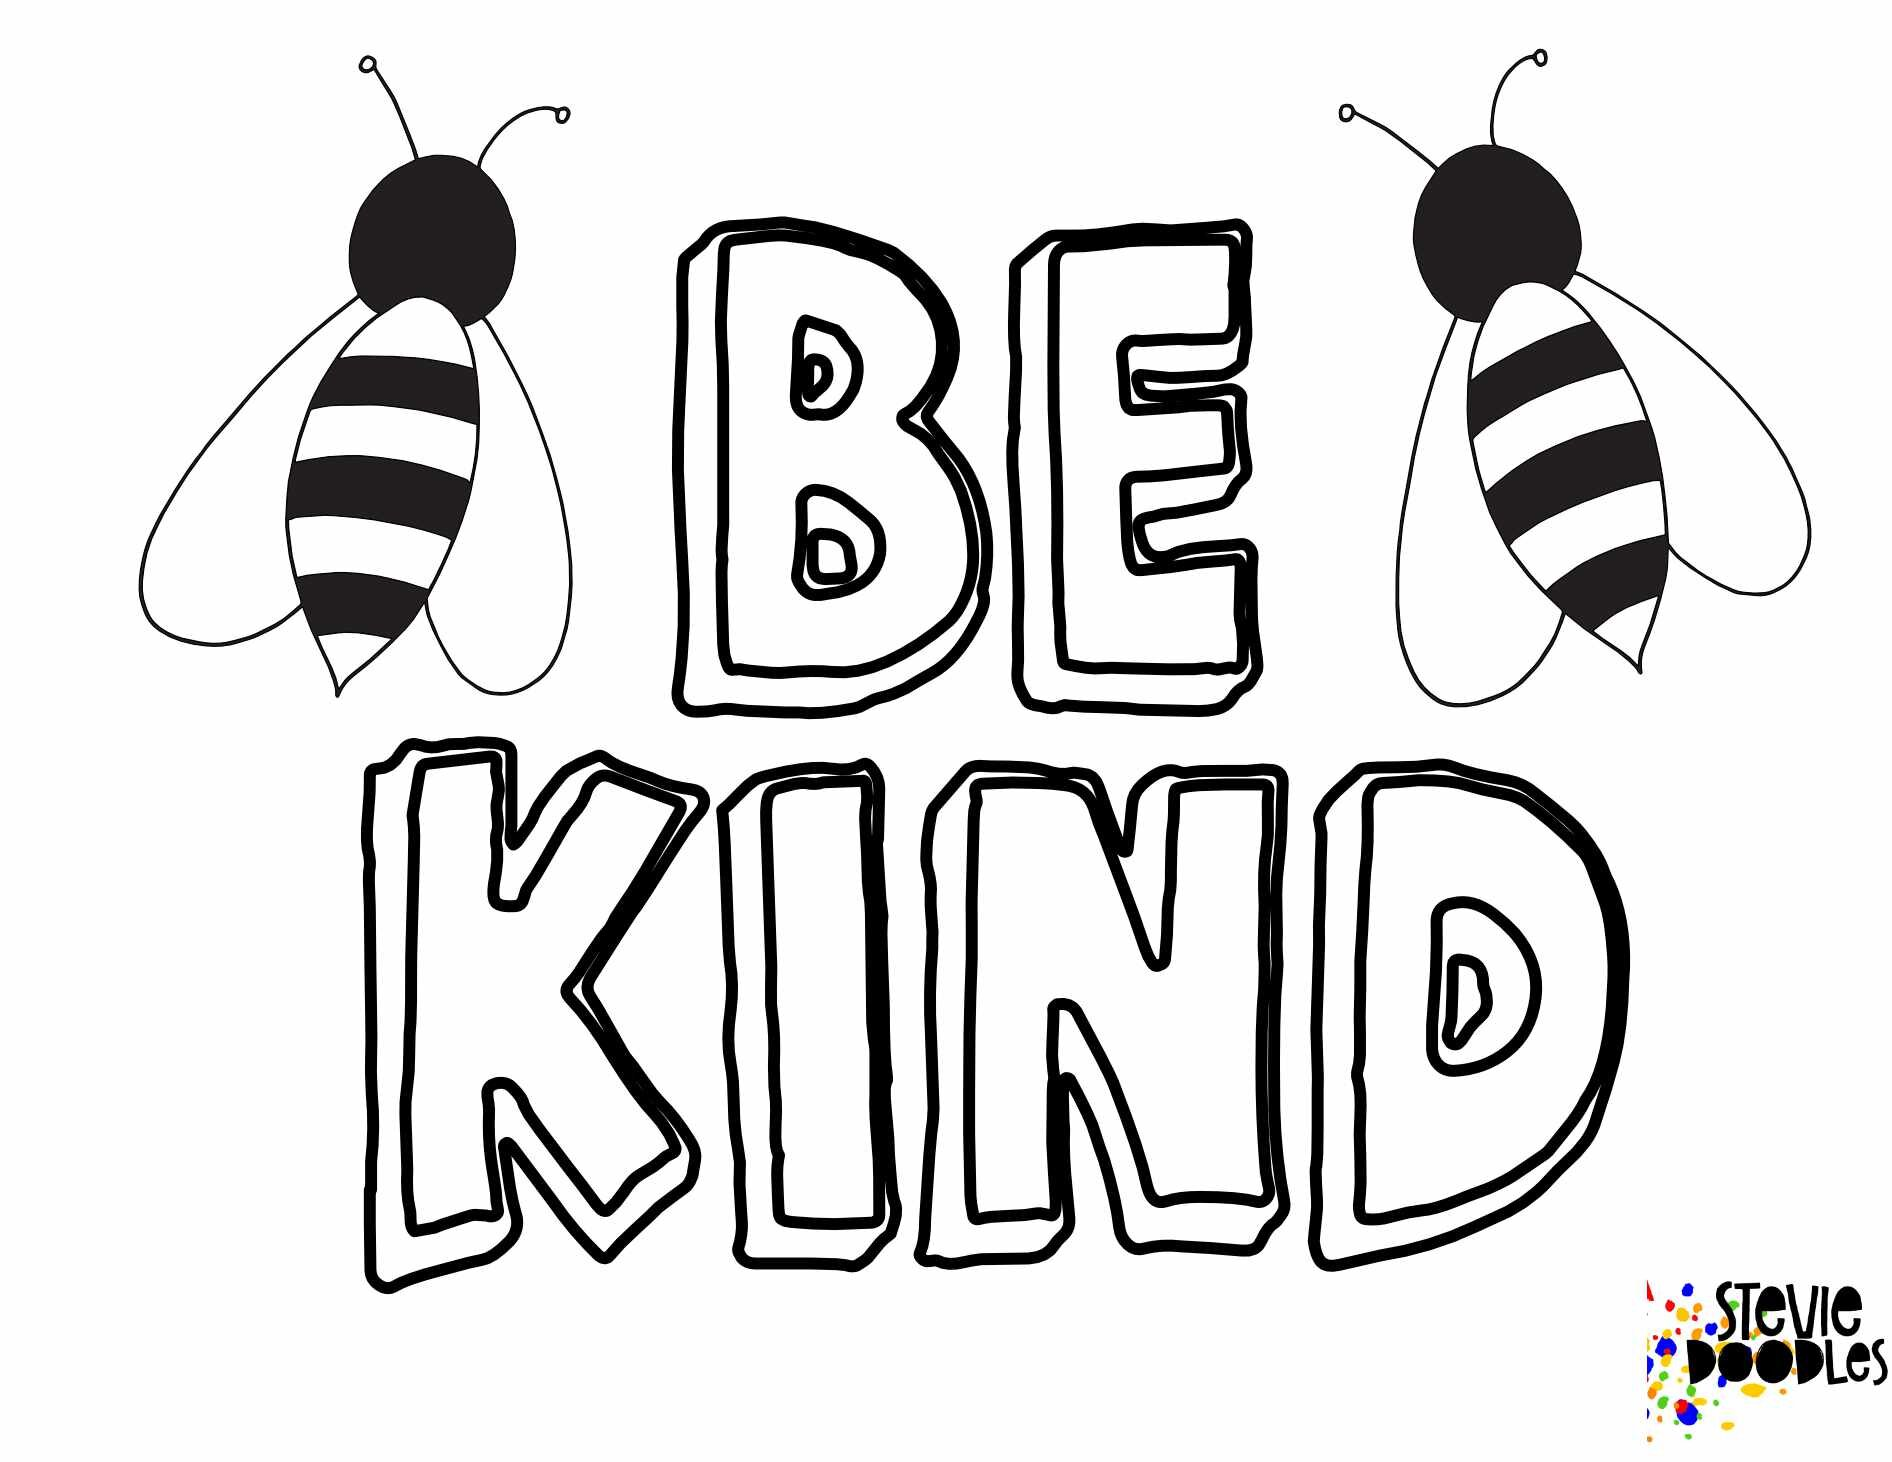 6 free be kind printable coloring pages stevie doodles 6 free be kind printable coloring pages